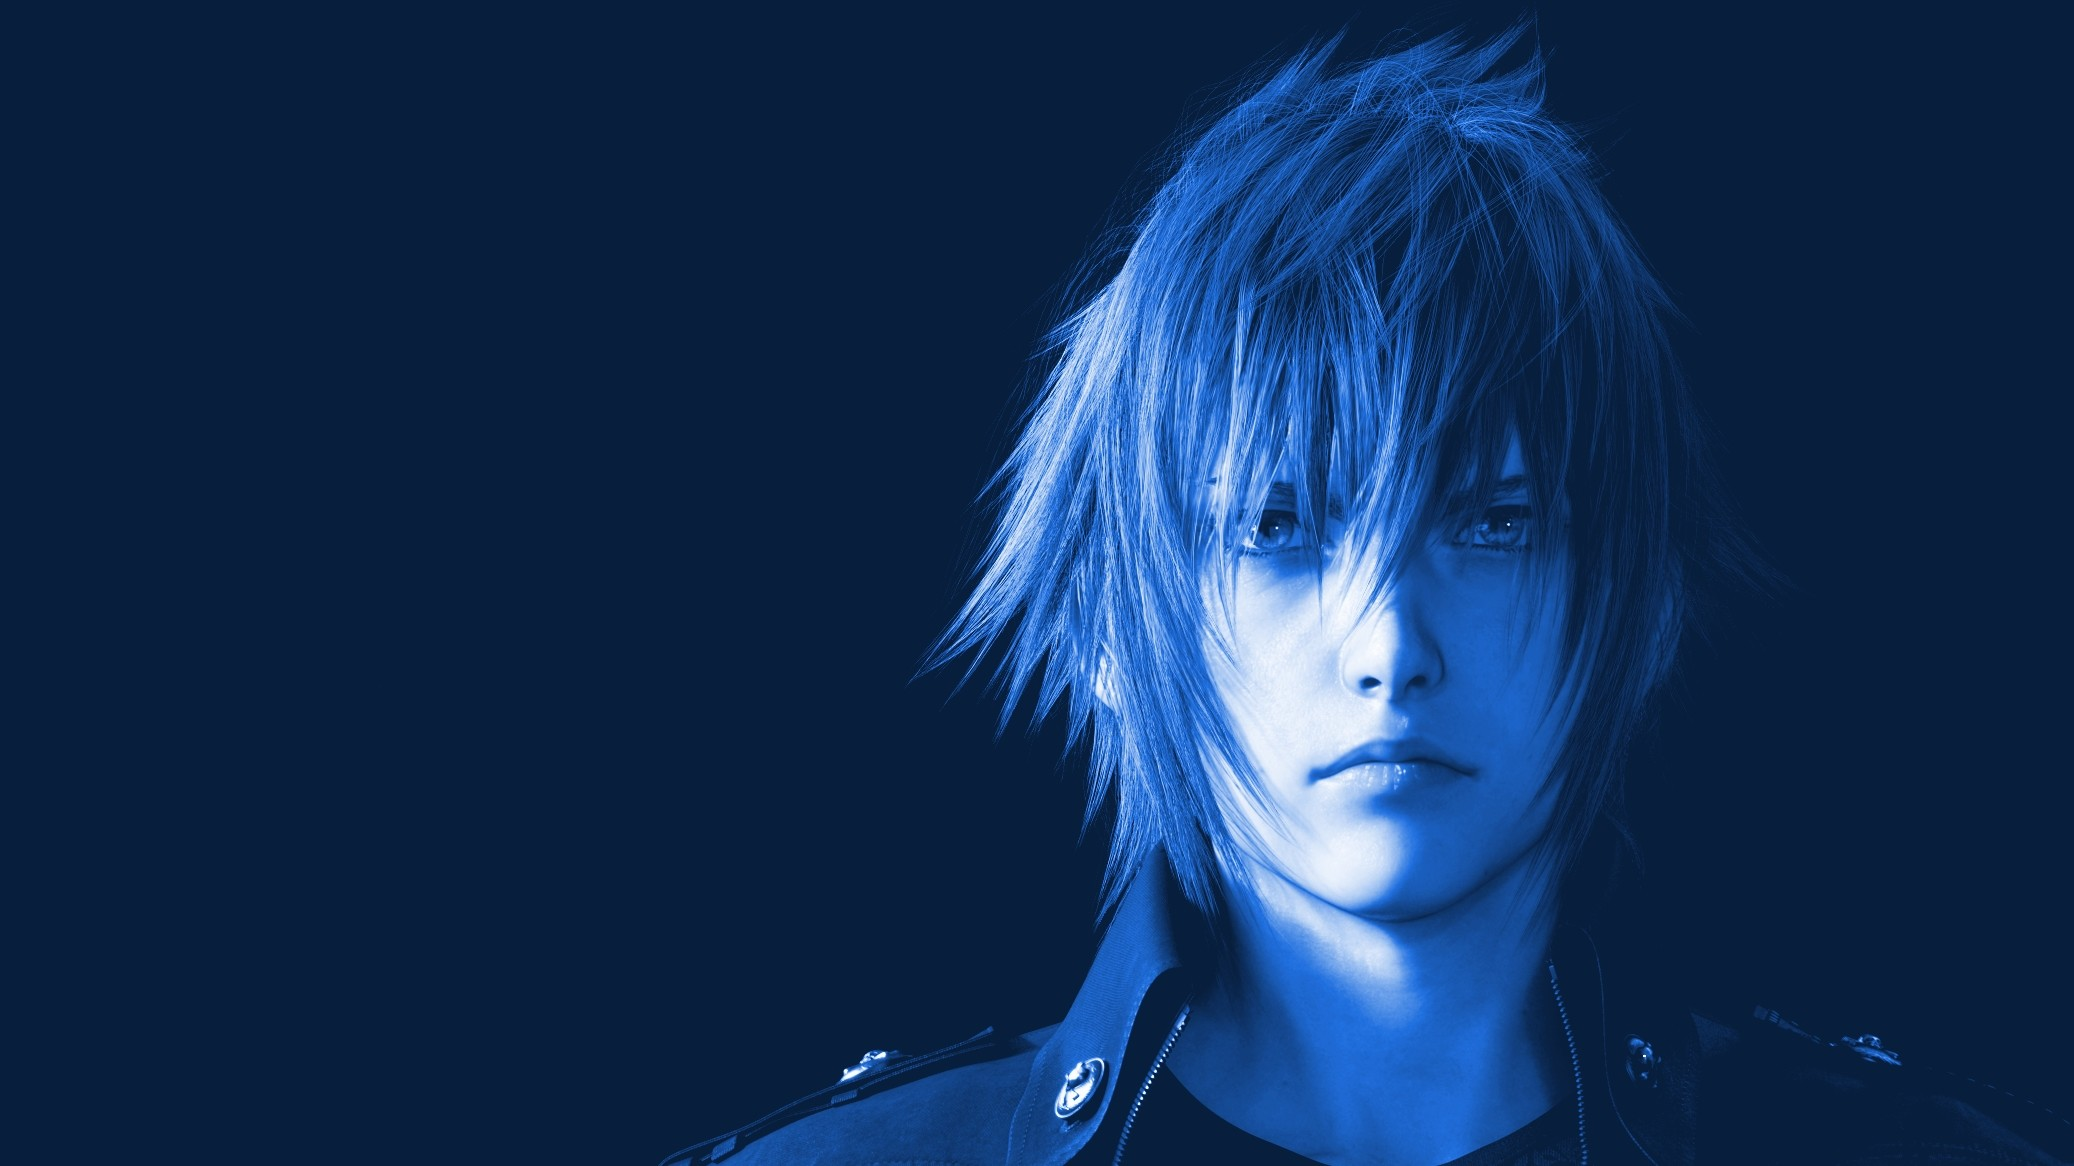 Final Fantasy 15 Wallpapers: Final Fantasy XV HD Wallpaper (81+ Images